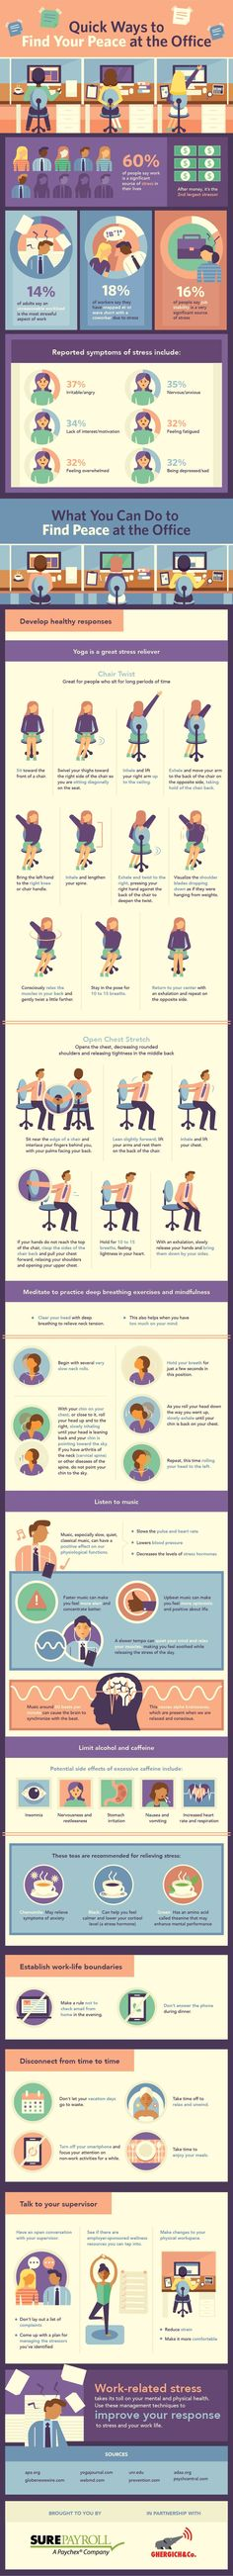 Quick Ways to Find Your Peace at the Office #Infographic #Stress #Workplace